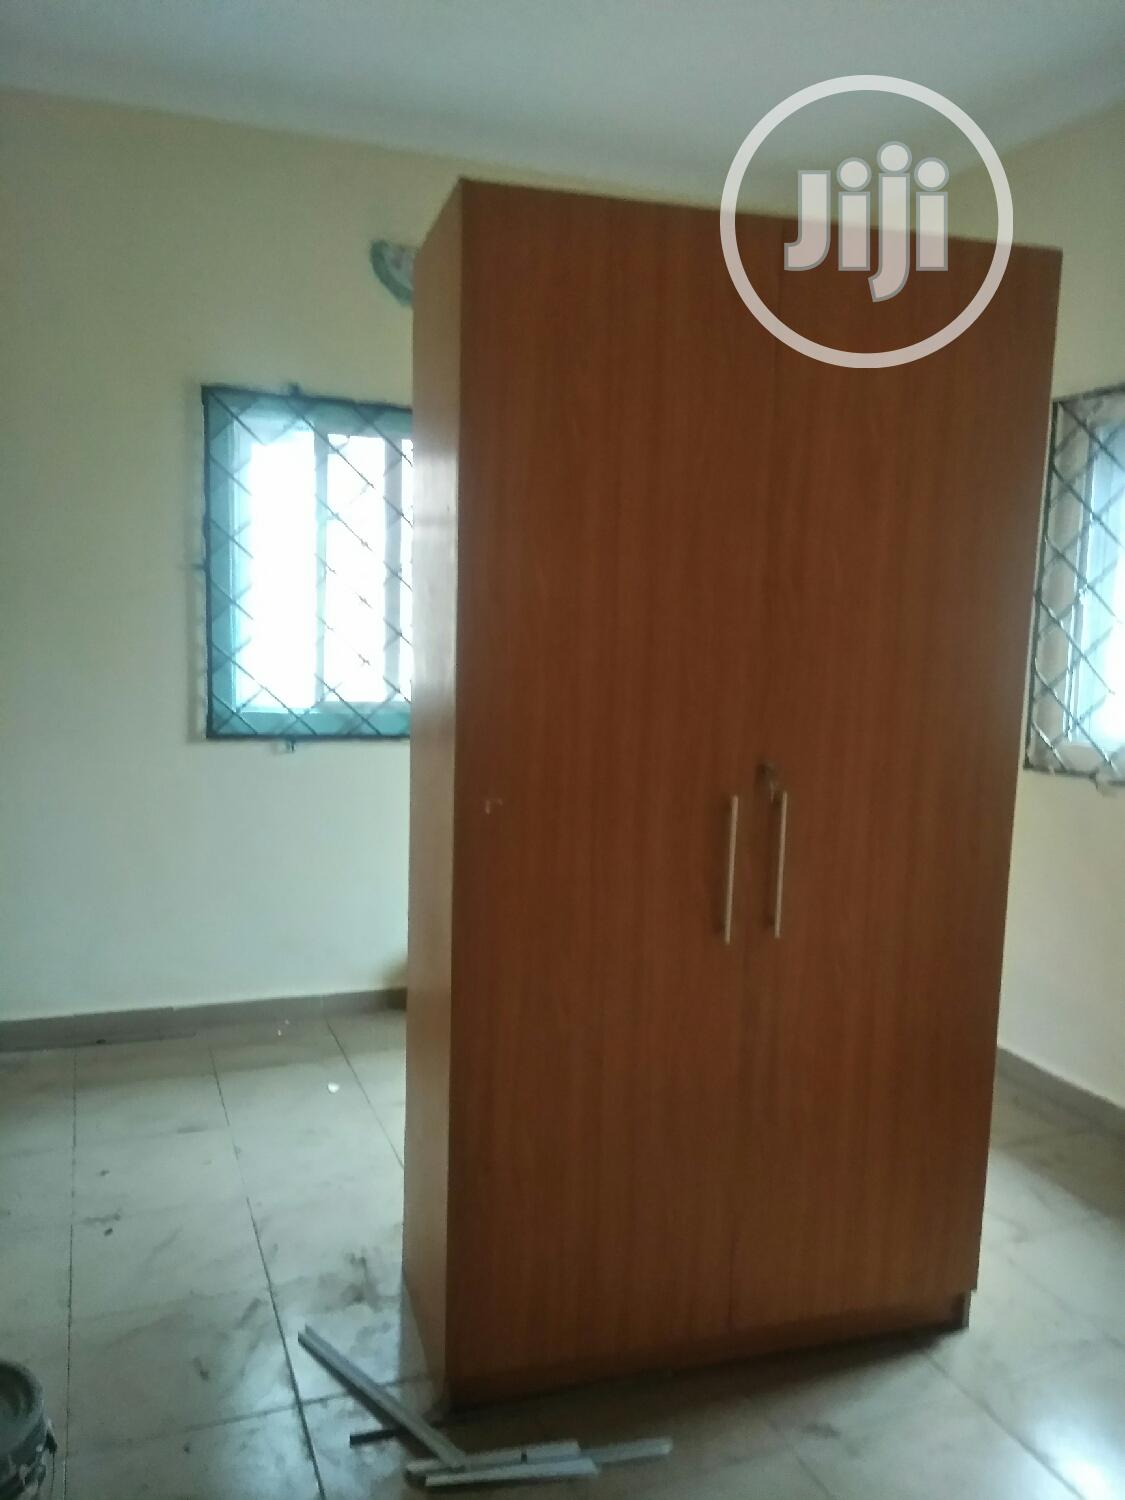 Ckean 3bedroom Flat, 2 Pple In Compound No Landlord   Houses & Apartments For Rent for sale in Benin City, Edo State, Nigeria